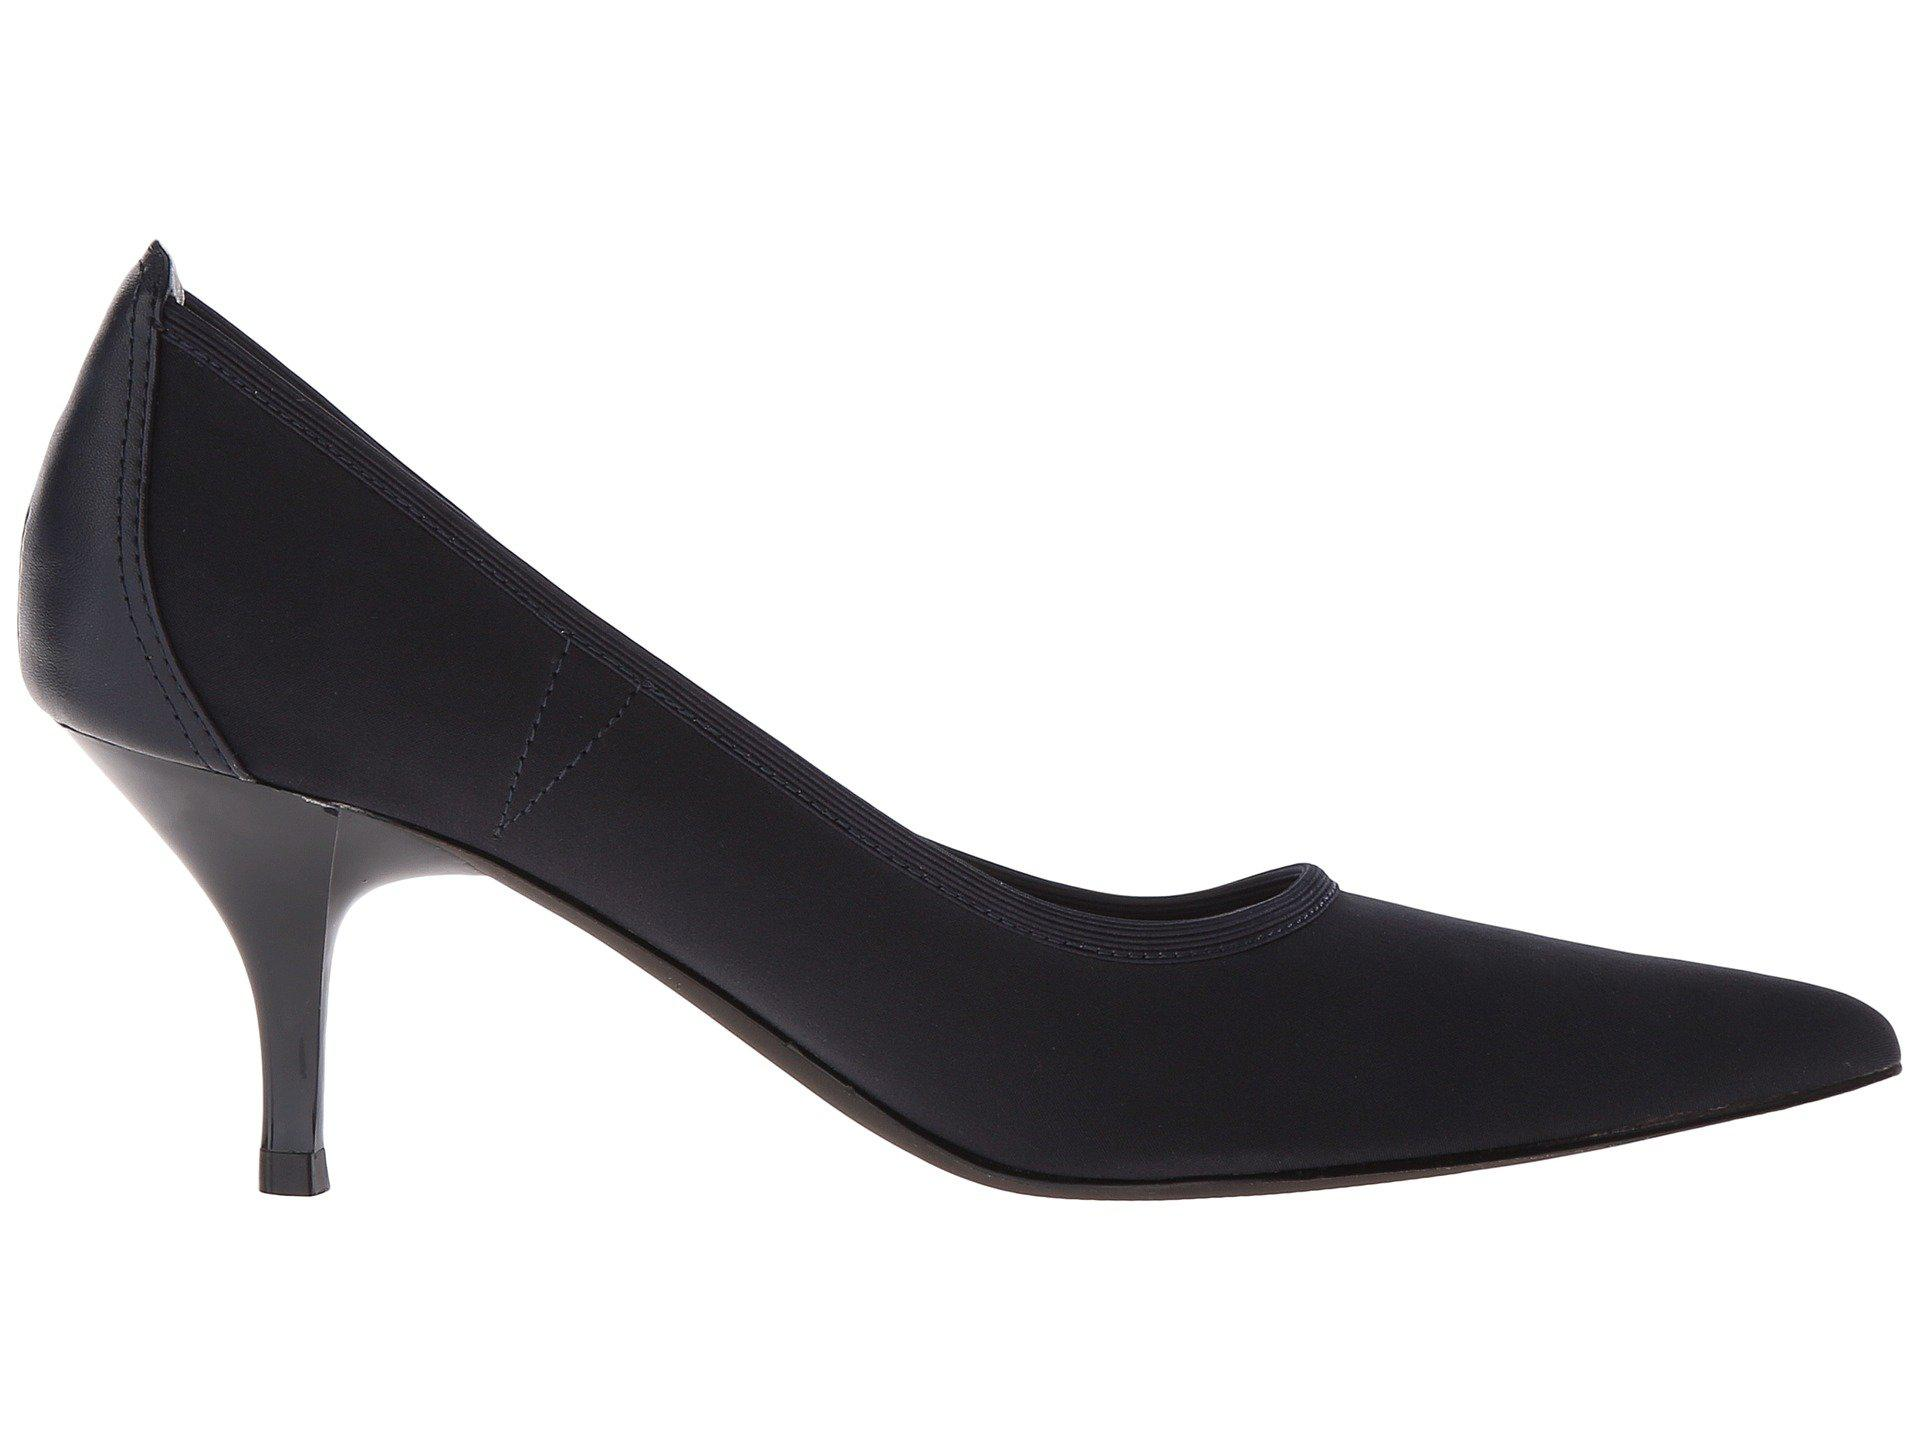 Tahari Dottie Black Stretch High Heels Lyst